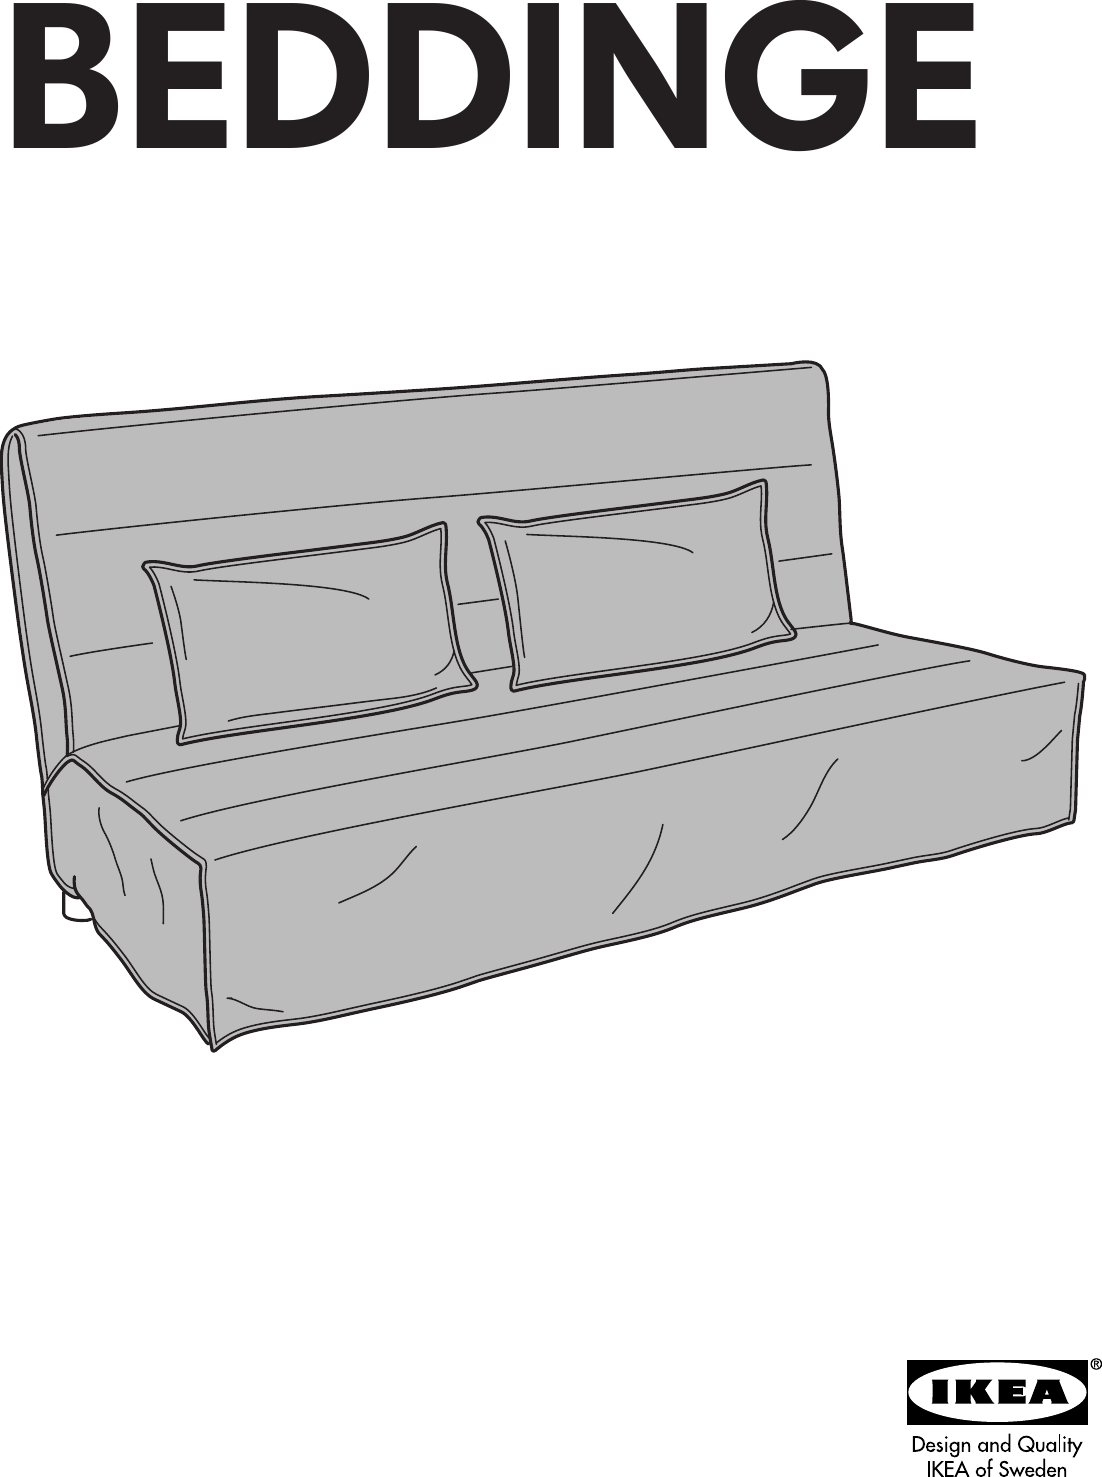 Ikea Beddinge Sofa Bed Cover Assembly Instruction